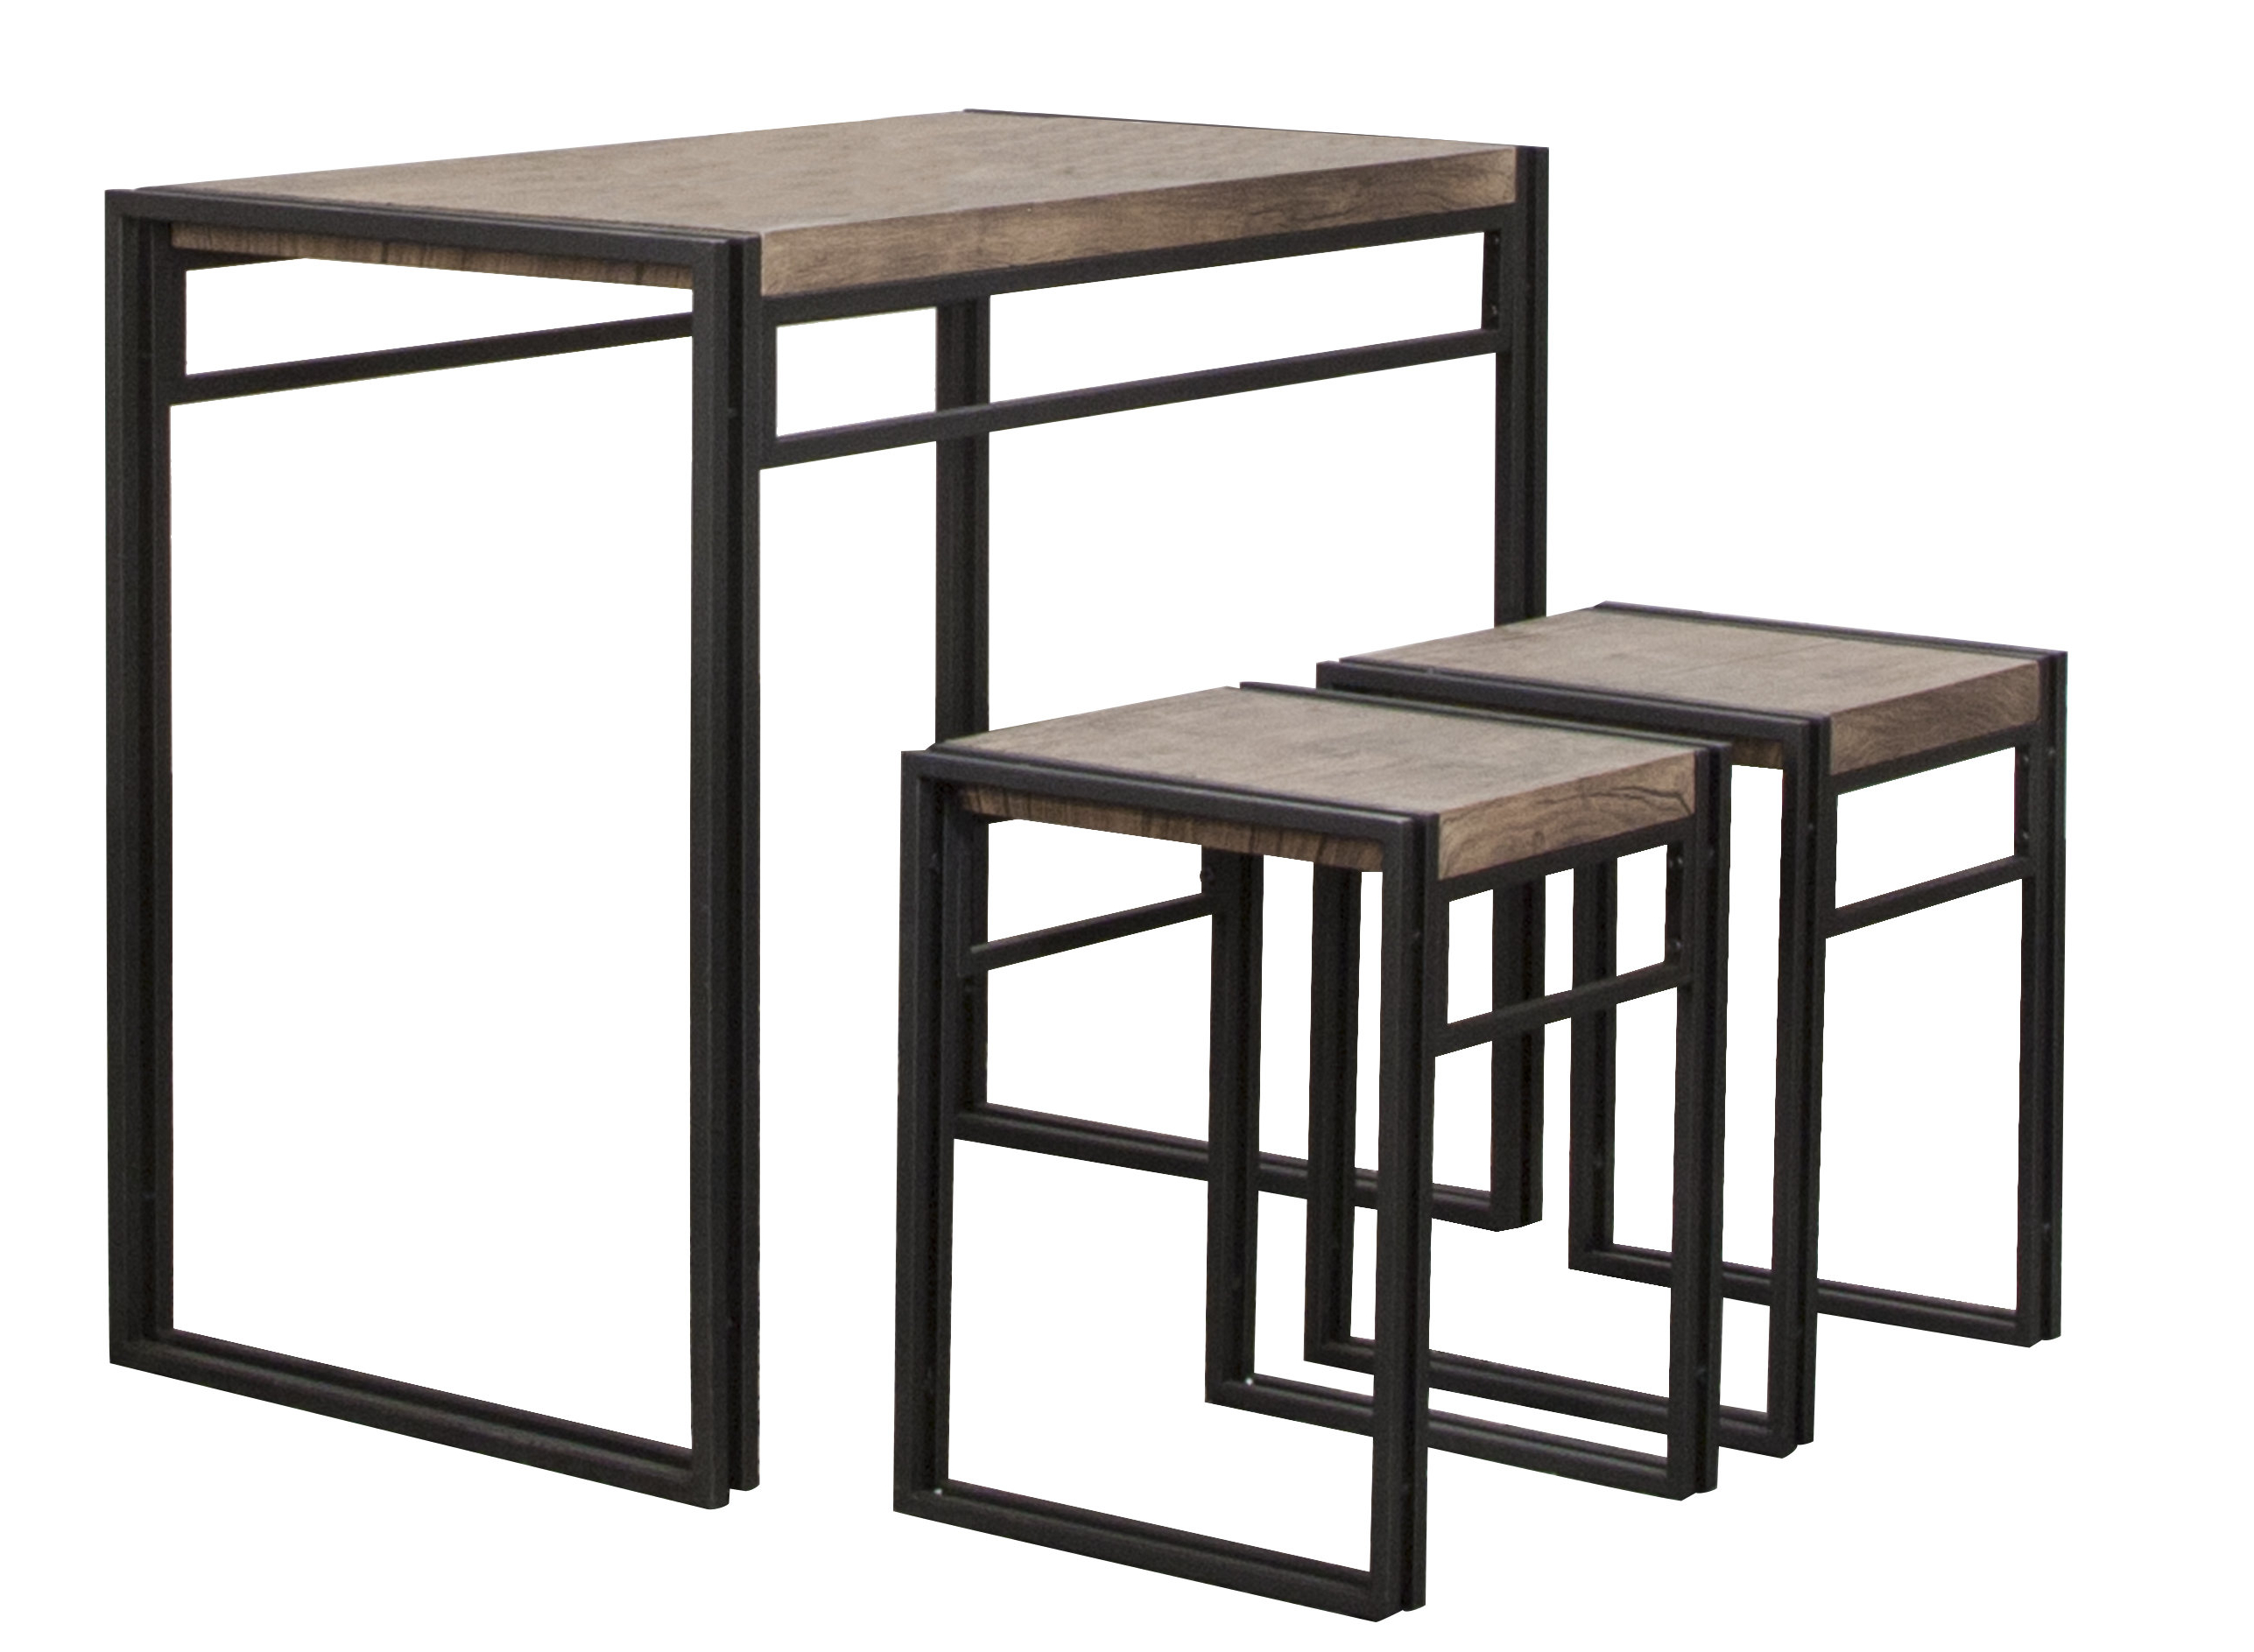 Chitwood 3 Piece Counter Height Dining Set With Regard To Trendy Mizpah 3 Piece Counter Height Dining Sets (View 2 of 20)